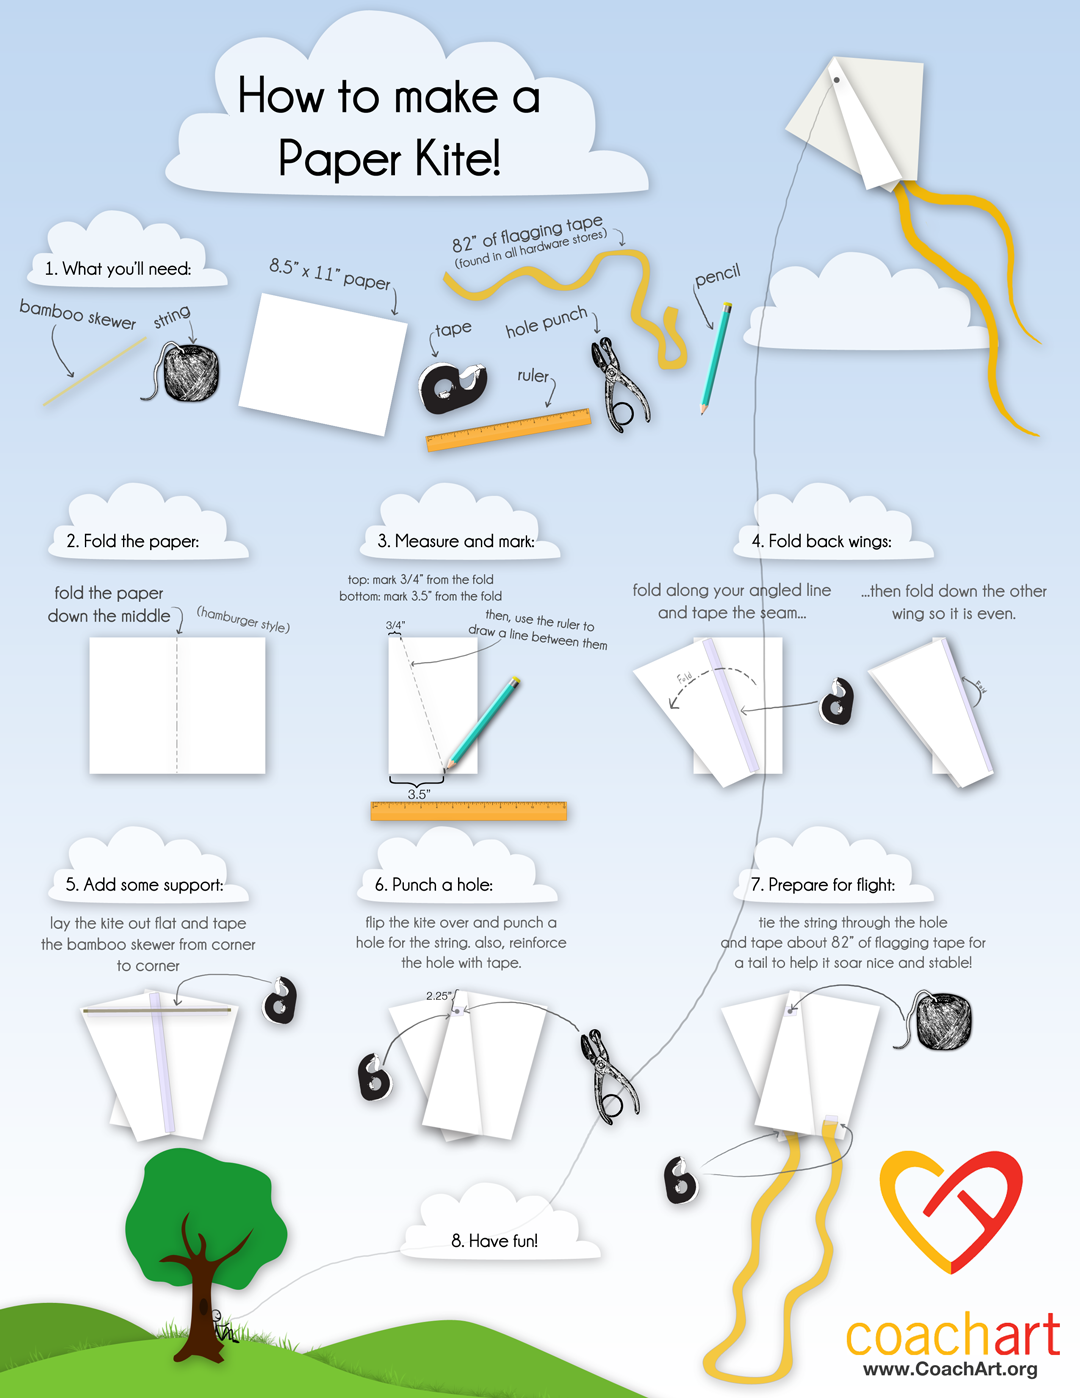 How To Make A Paper Kite Illustrated